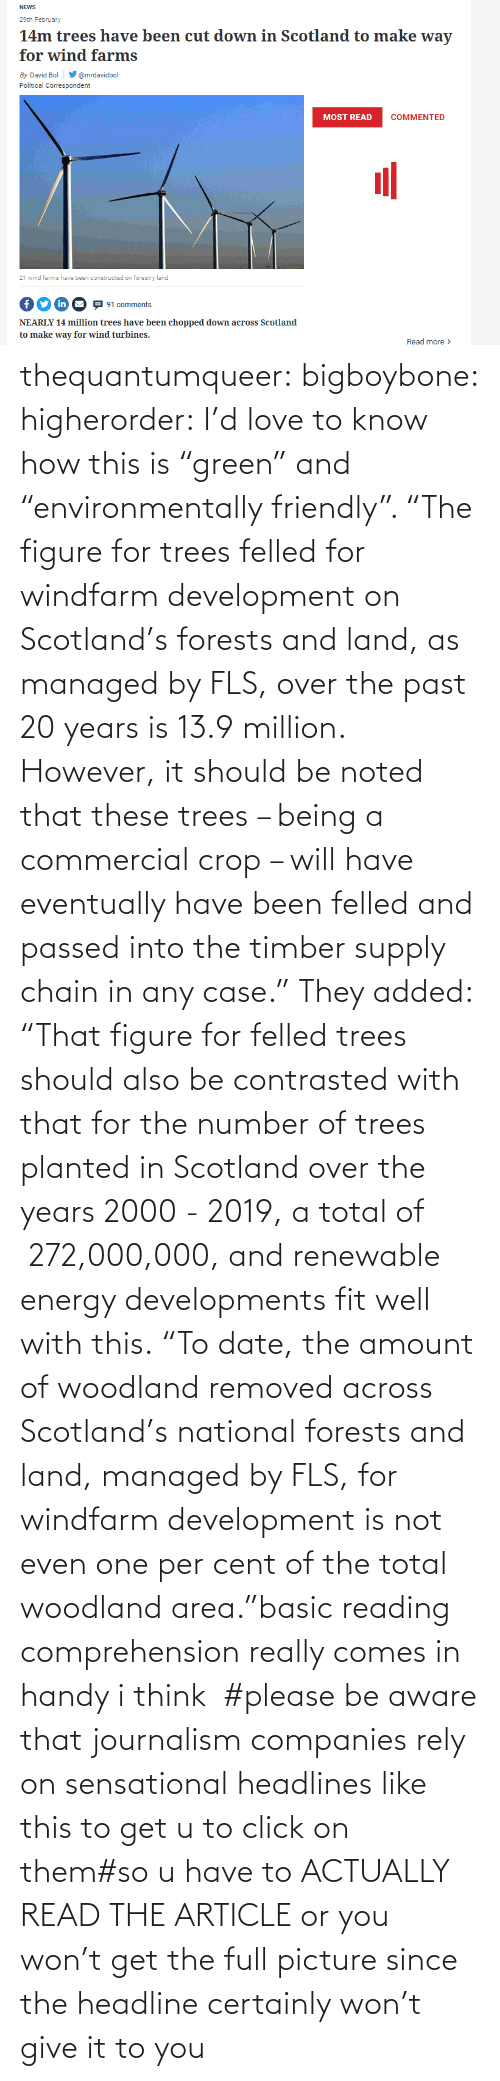 "Actually: thequantumqueer: bigboybone:  higherorder: I'd love to know how this is ""green"" and ""environmentally friendly"".  ""The figure for trees felled for windfarm development on Scotland's forests and land, as managed by FLS, over the past 20 years is 13.9 million. However, it should be noted that these trees – being a commercial crop – will have eventually have been felled and passed into the timber supply chain in any case."" They added: ""That figure for felled trees should also be contrasted with that for the number of trees planted in Scotland over the years 2000 - 2019, a total of  272,000,000, and renewable energy developments fit well with this. ""To date, the amount of woodland removed across Scotland's national forests and land, managed by FLS, for windfarm development is not even one per cent of the total woodland area.""basic reading comprehension really comes in handy i think   #please be aware that journalism companies rely on sensational headlines like this to get u to click on them#so u have to ACTUALLY READ THE ARTICLE or you won't get the full picture since the headline certainly won't give it to you"